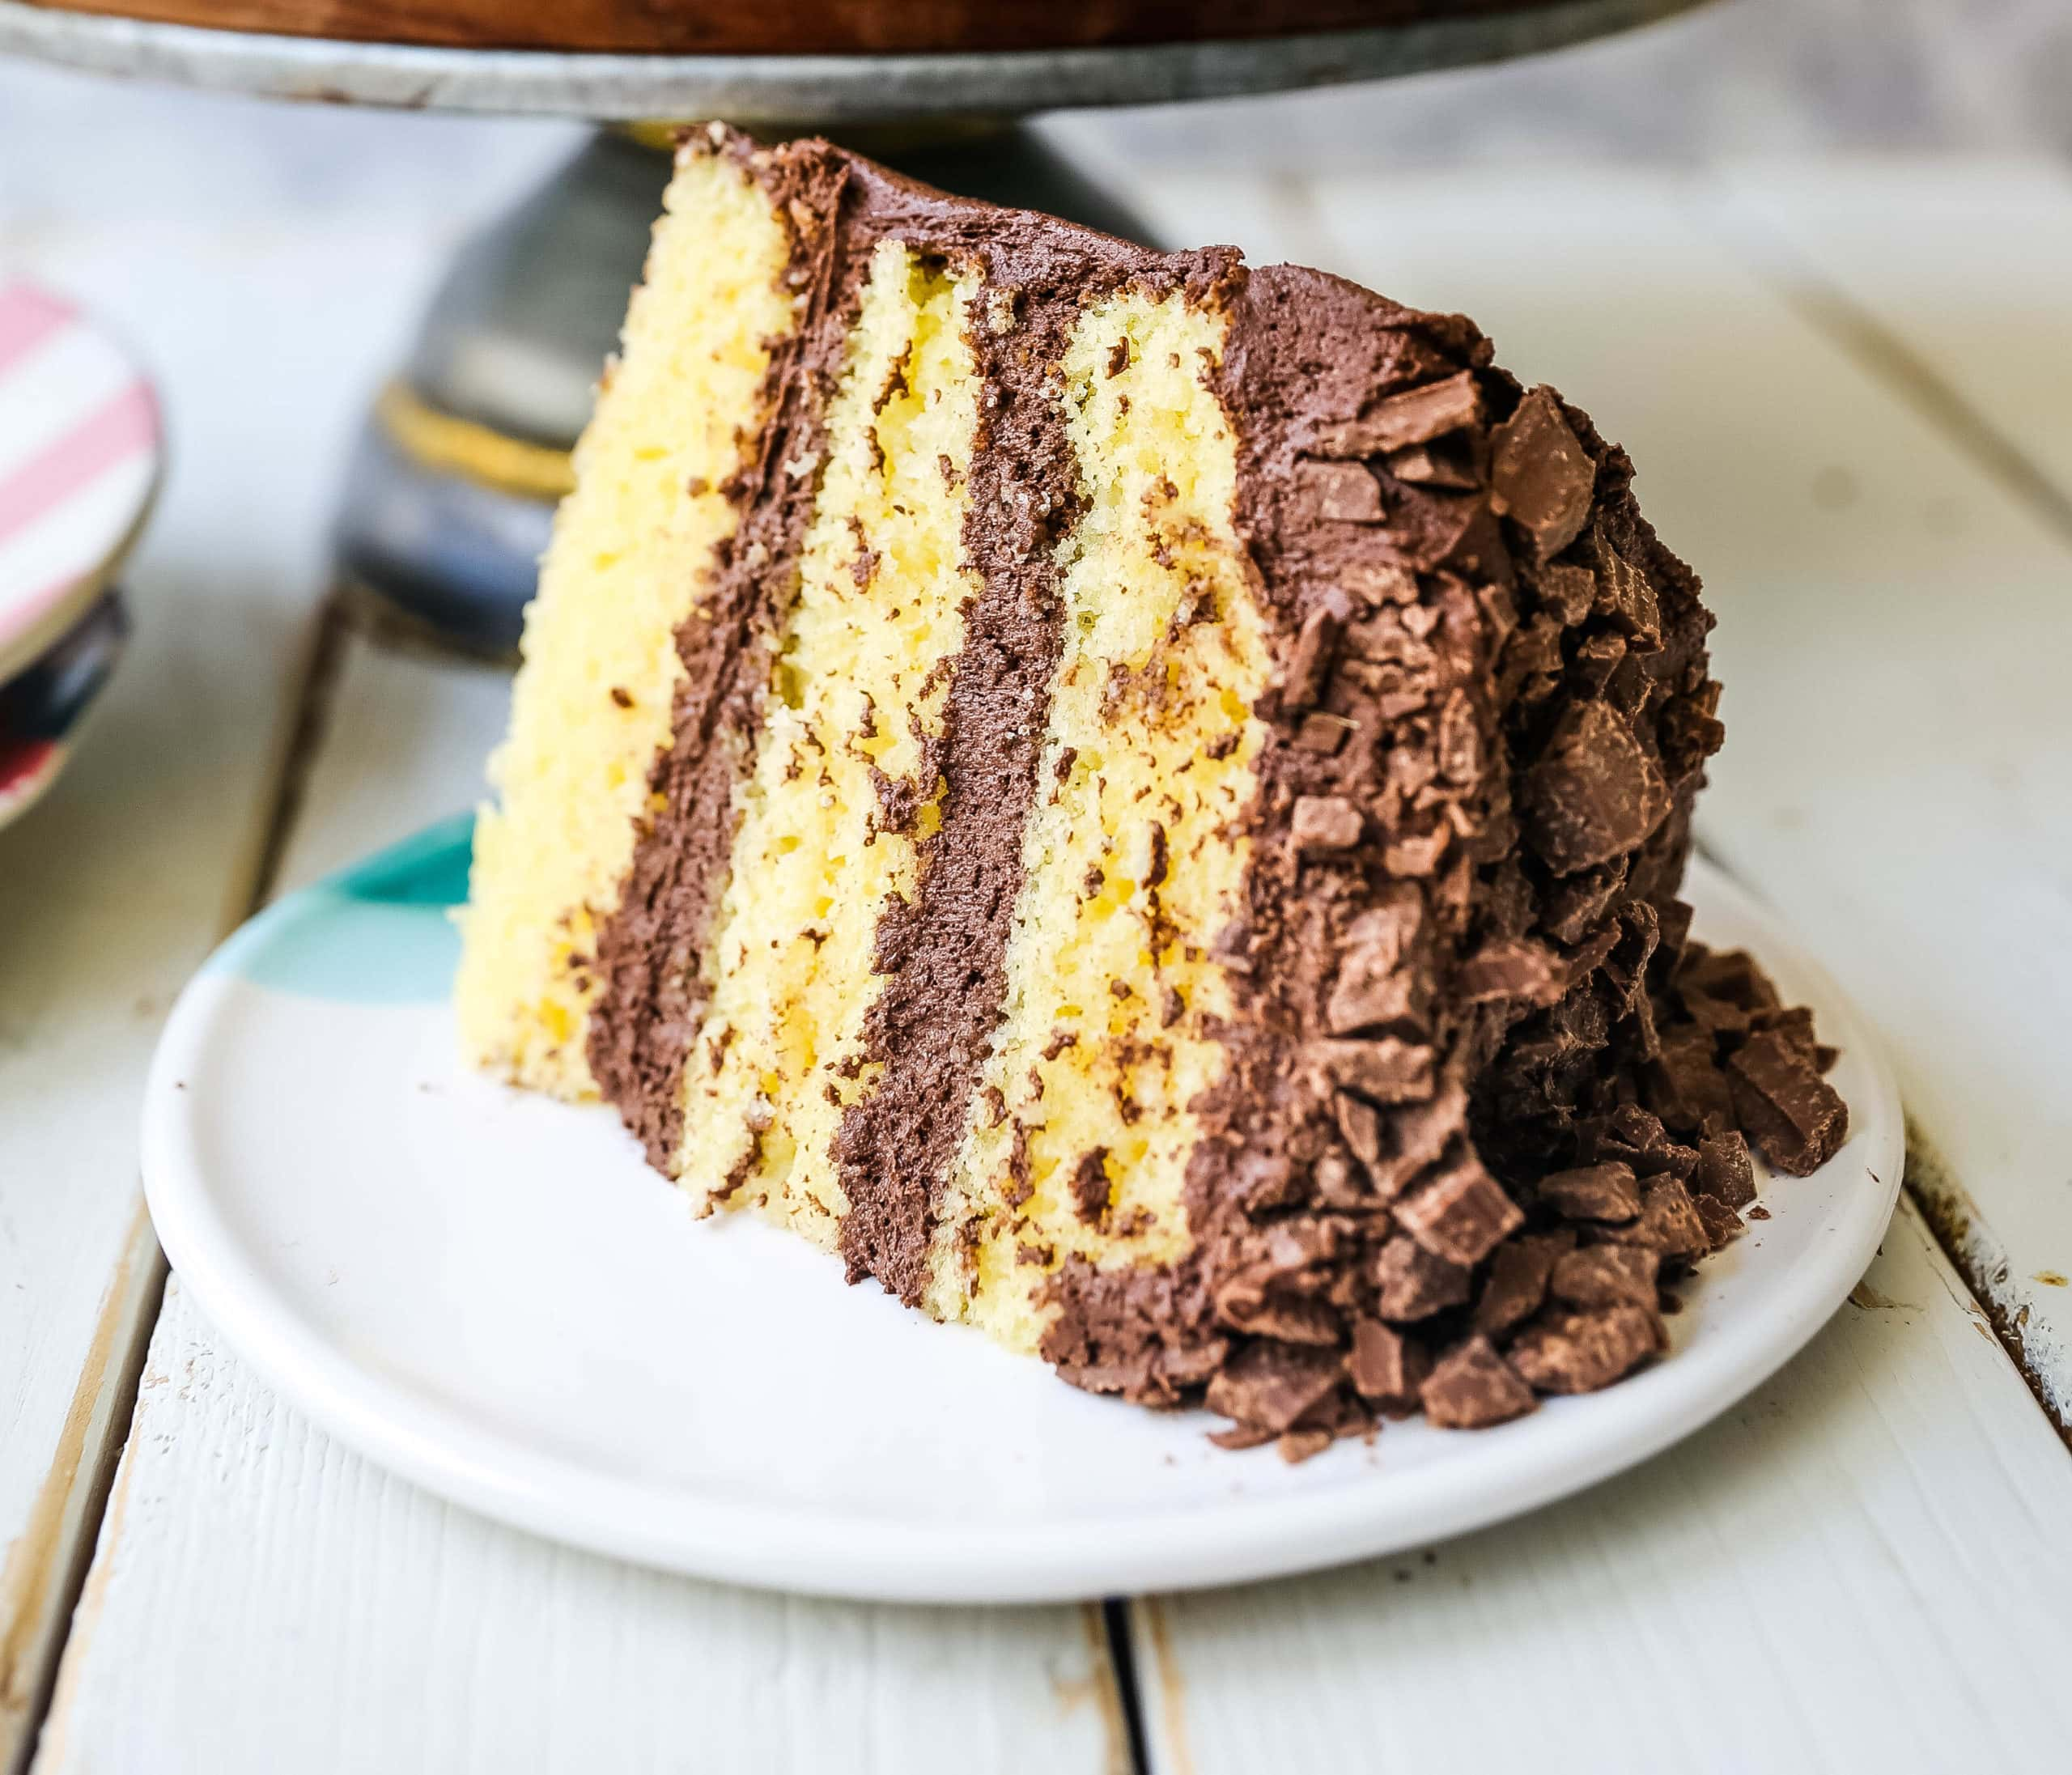 Yellow Cake with Chocolate Frosting The BEST Yellow Cake Recipe with Milk Chocolate Frosting. 5-Star Rated Recipe! www.modernhoney.com #yellowcake #homemadecake #cake #yellowcakechocolatefrosting #baking